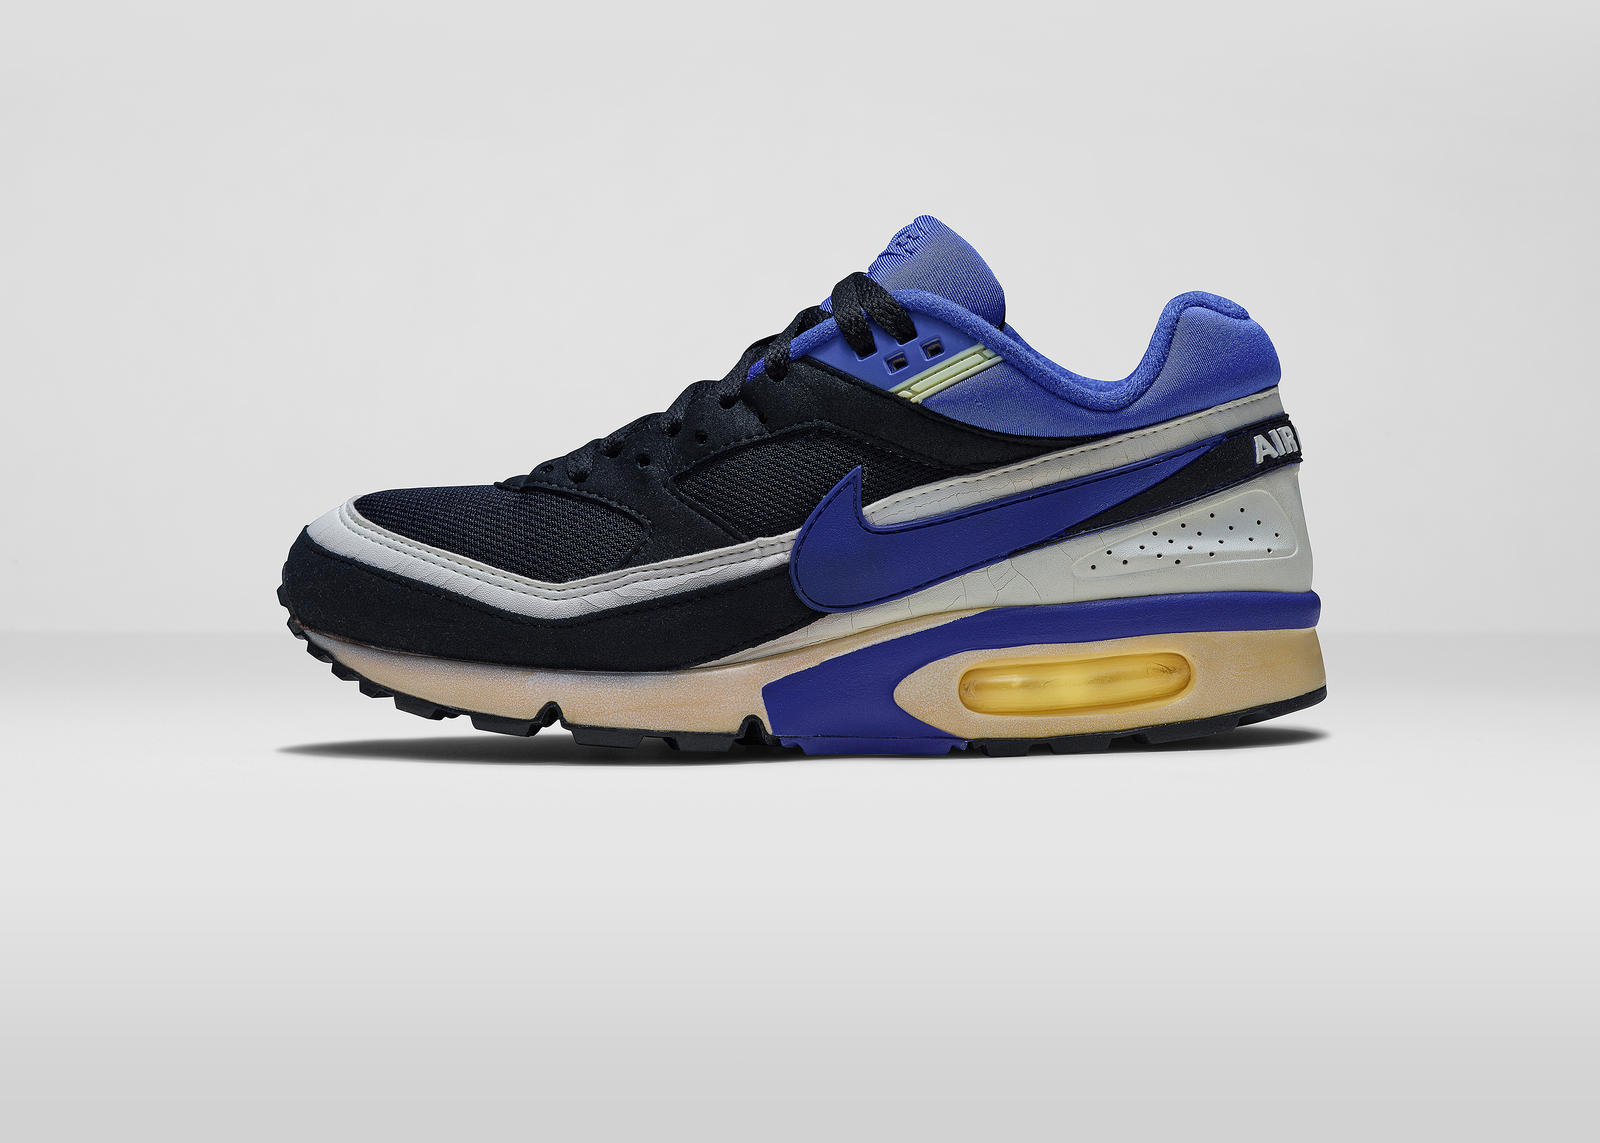 nouveau concept d987b 12998 Air Max Archives - Nike News